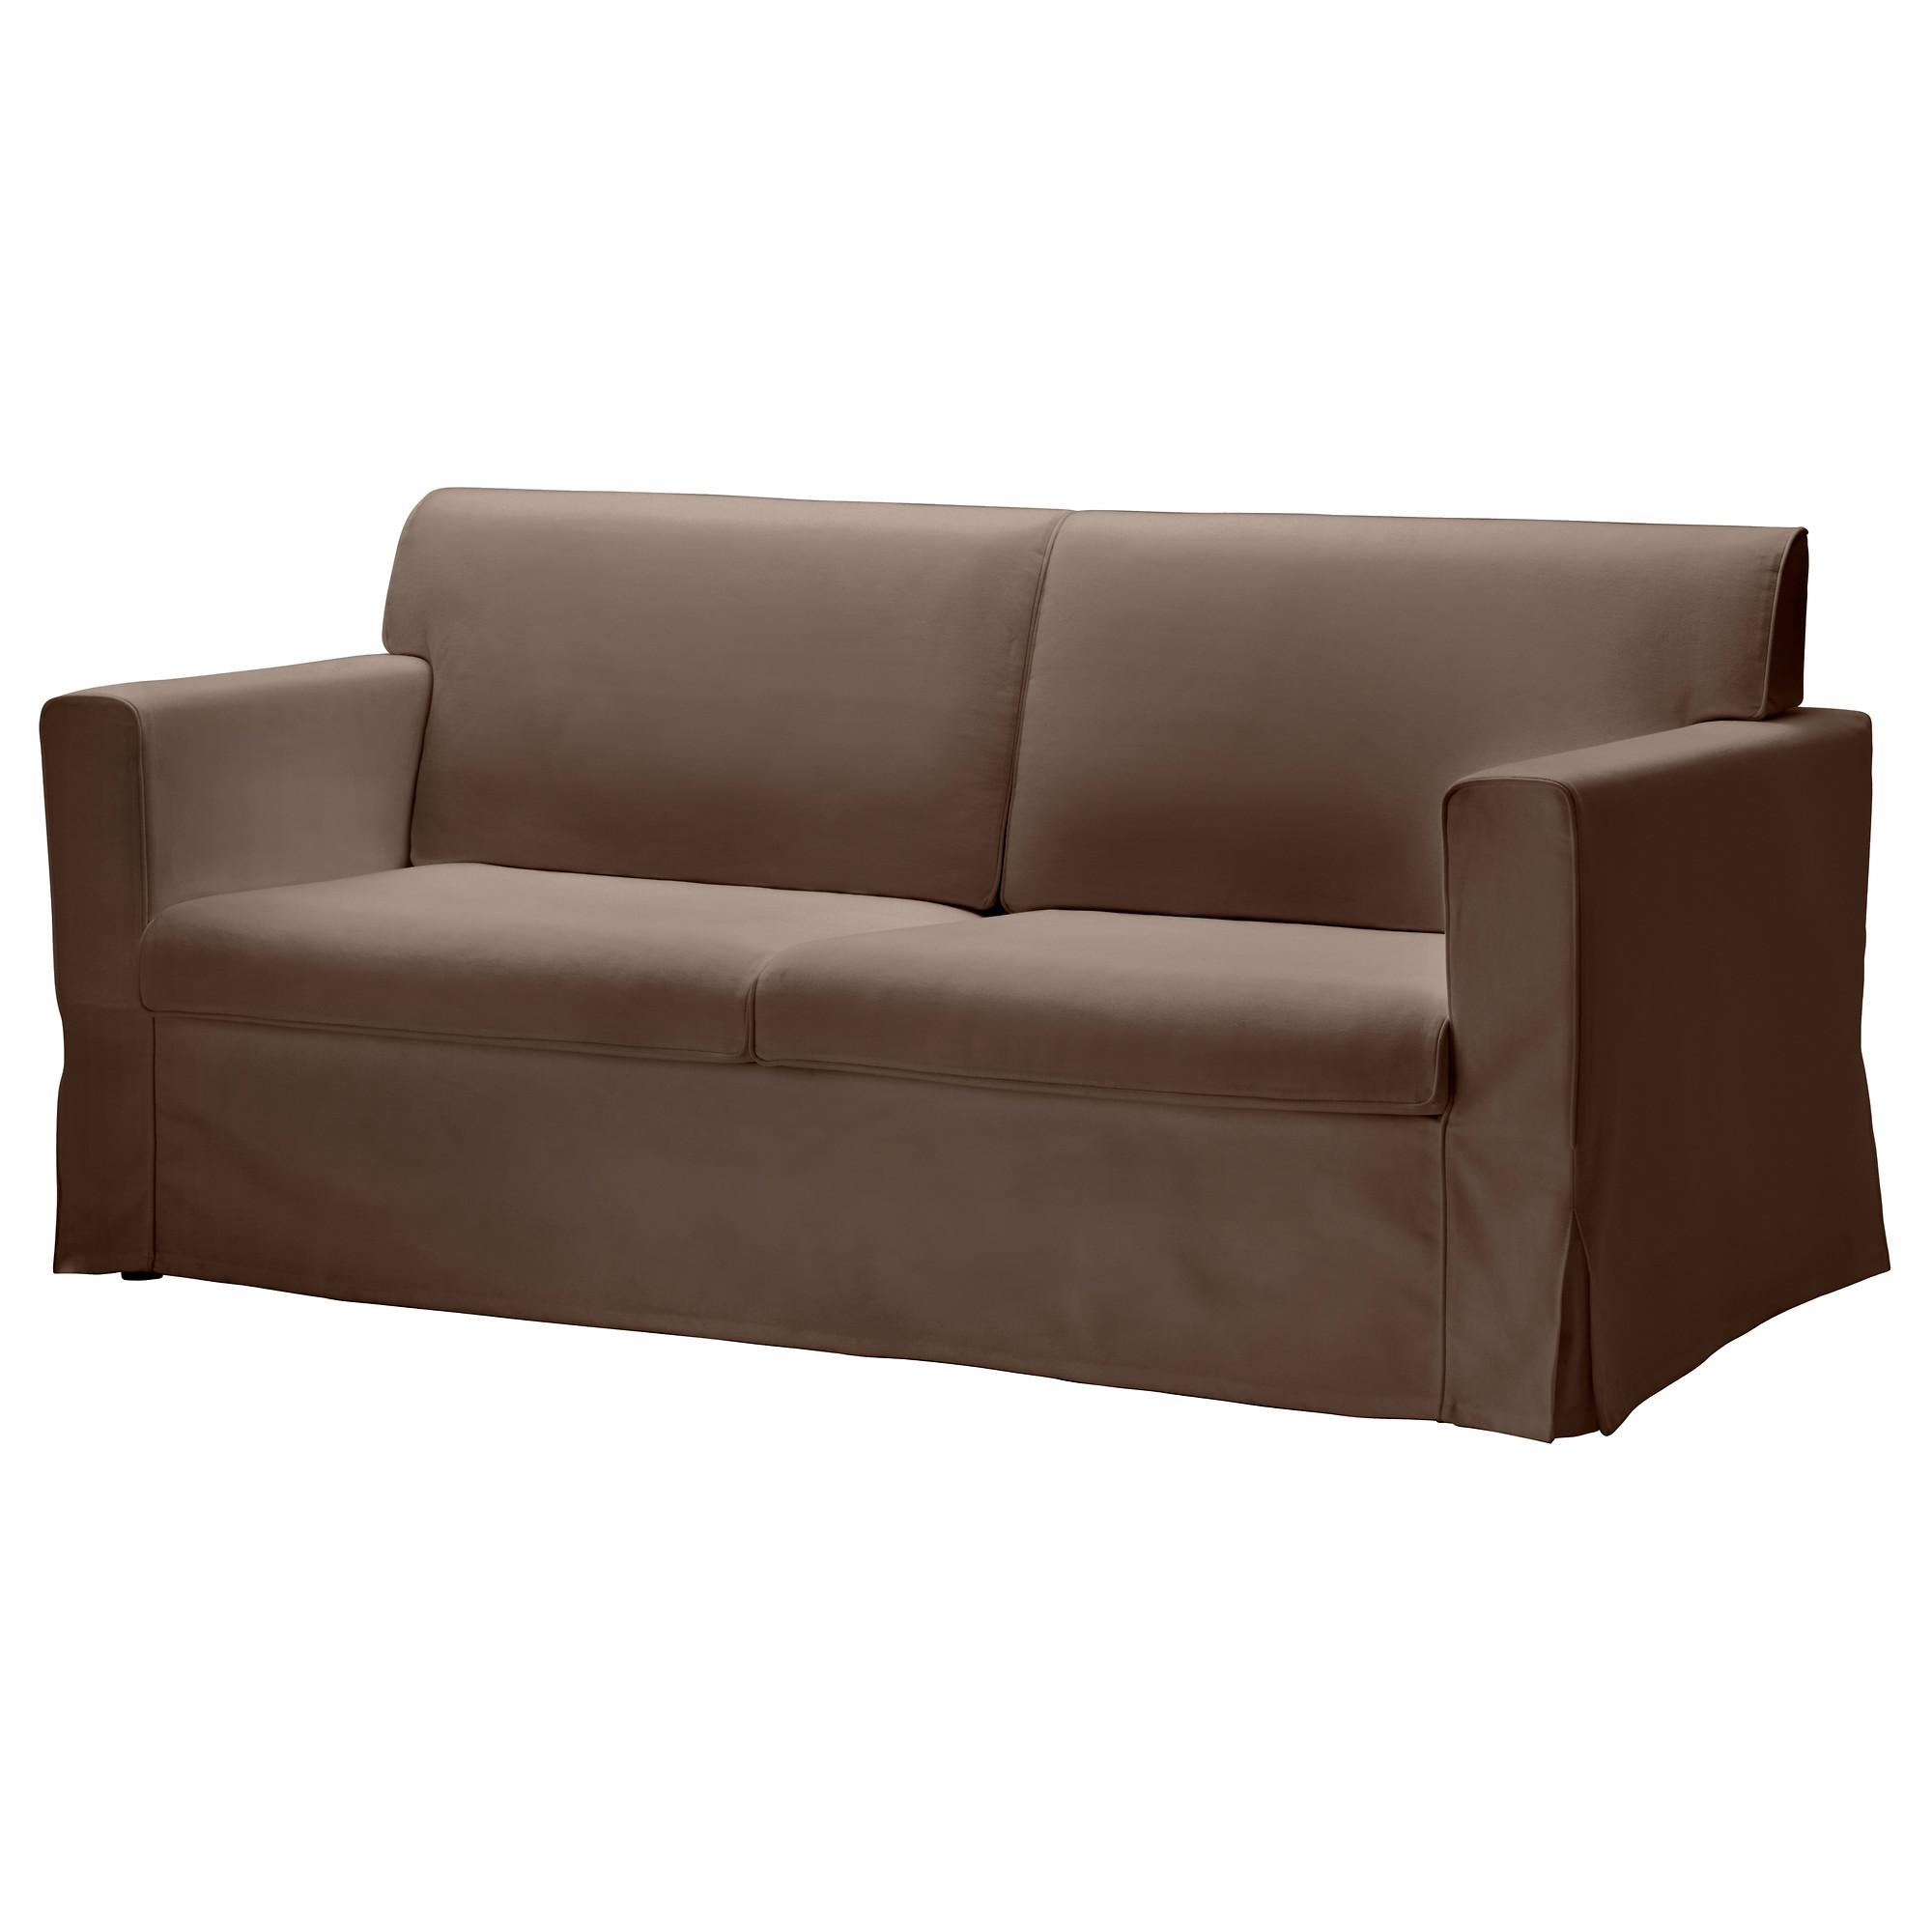 Simple sofas free shipping sigle sofa modern design clic simple thesofa - Sofa gratis ...